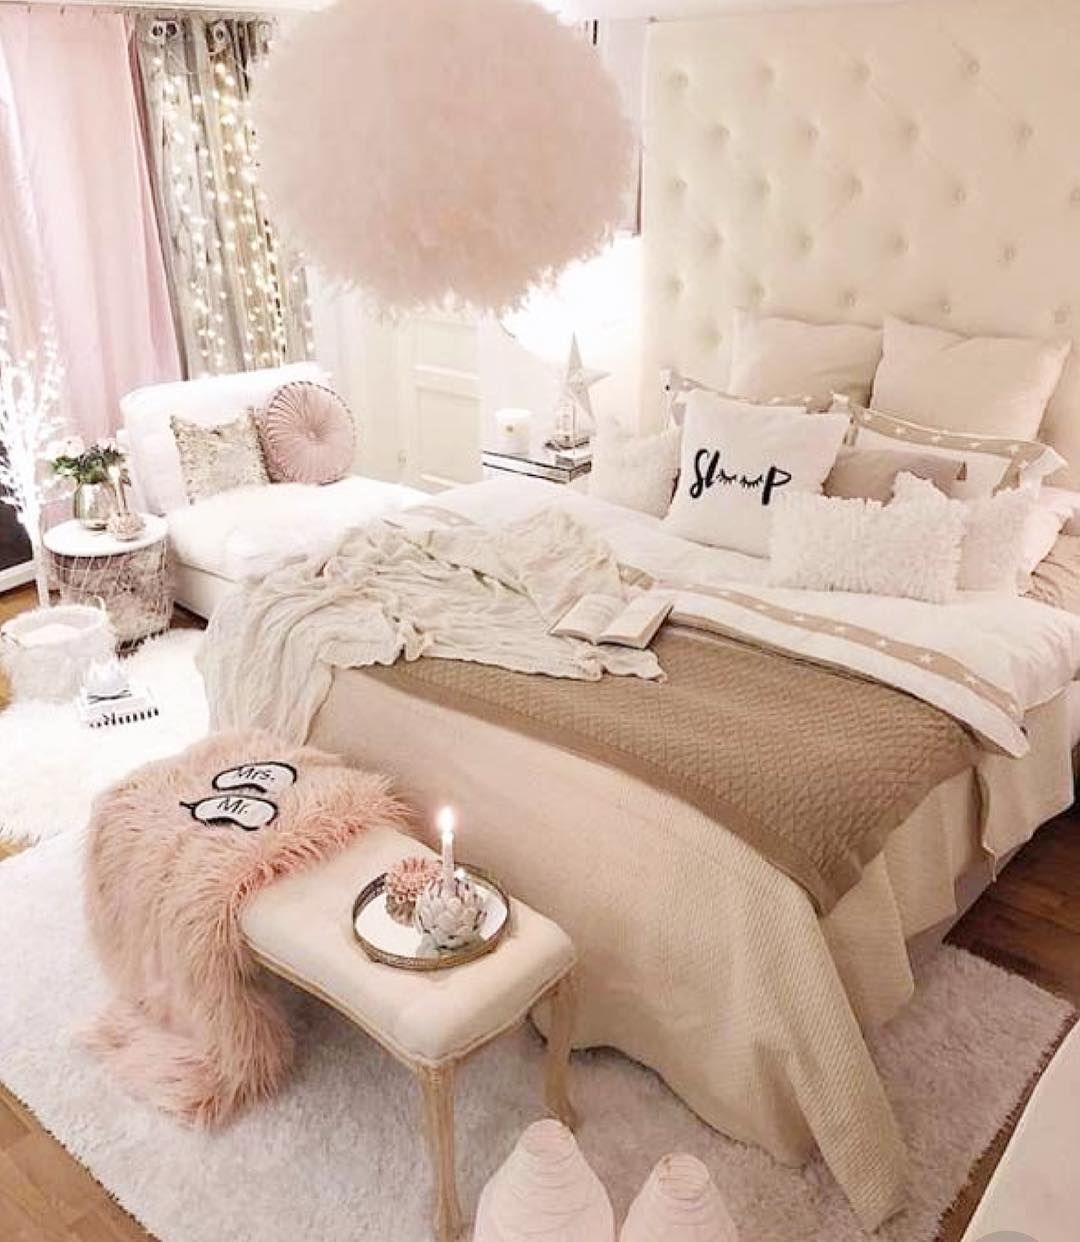 Pin On Girls Room Inspiration